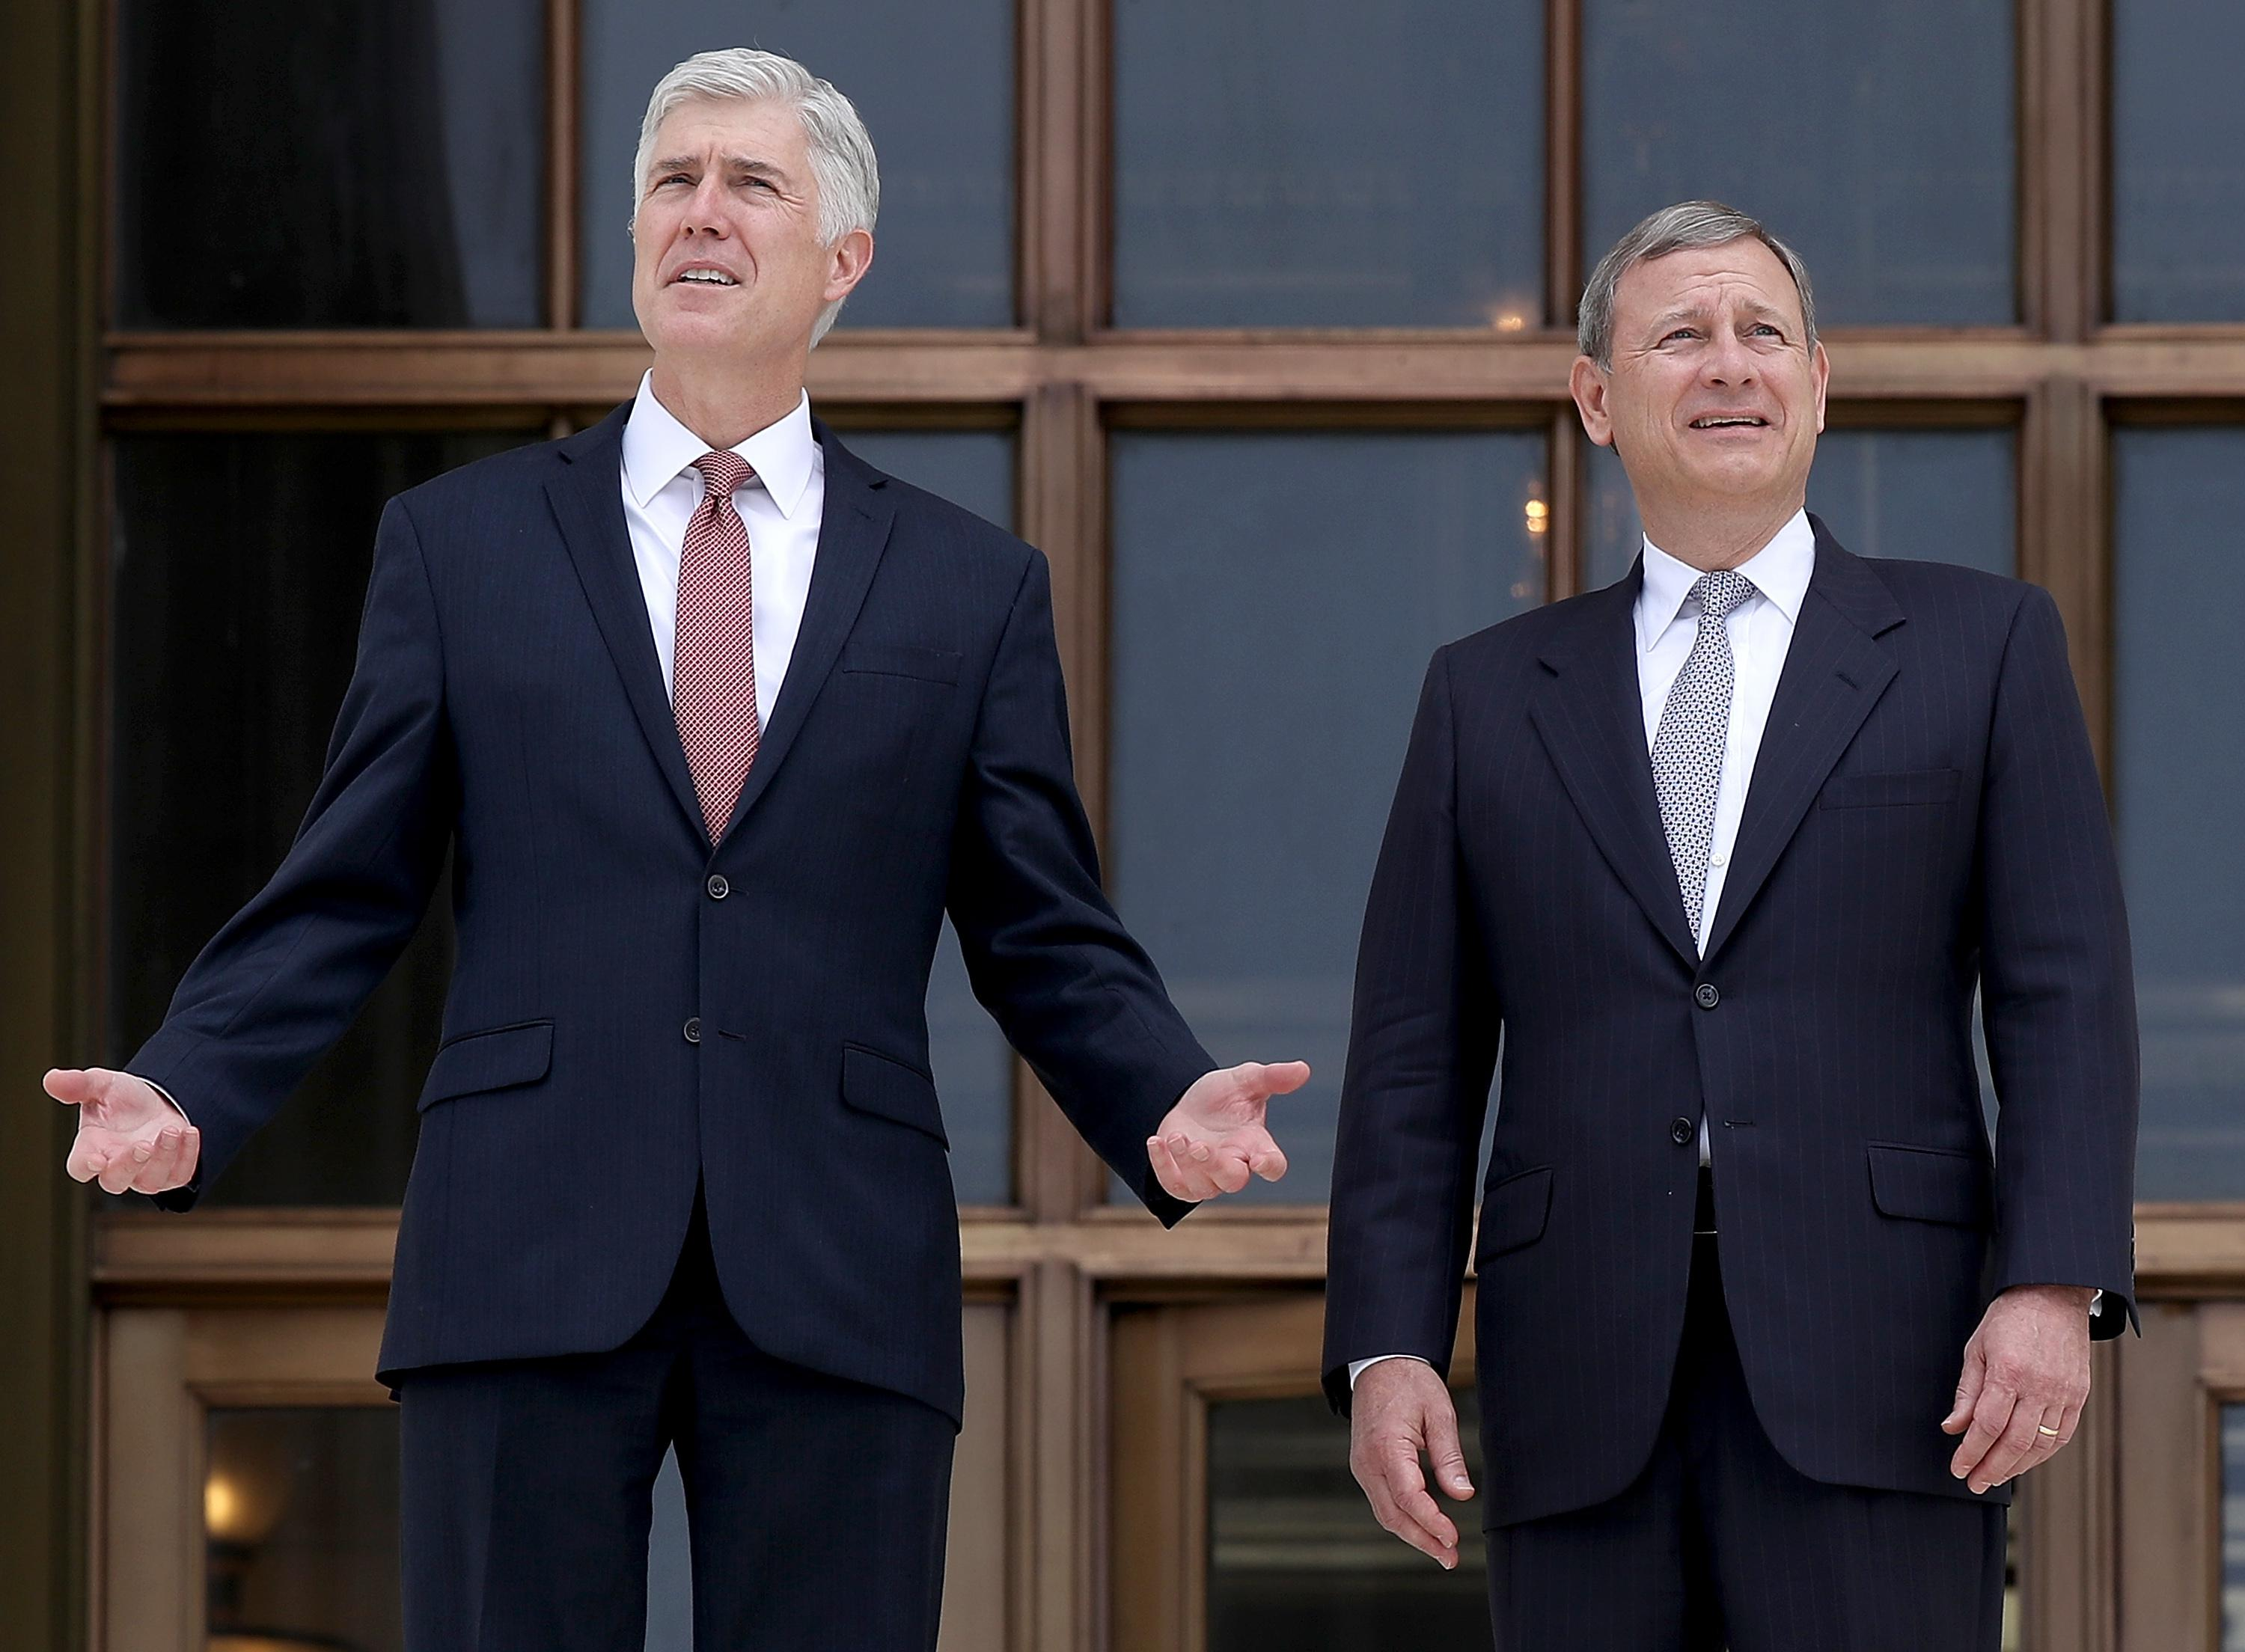 Neil Gorsuch and John Roberts talking to each other in front of the Supreme Court.